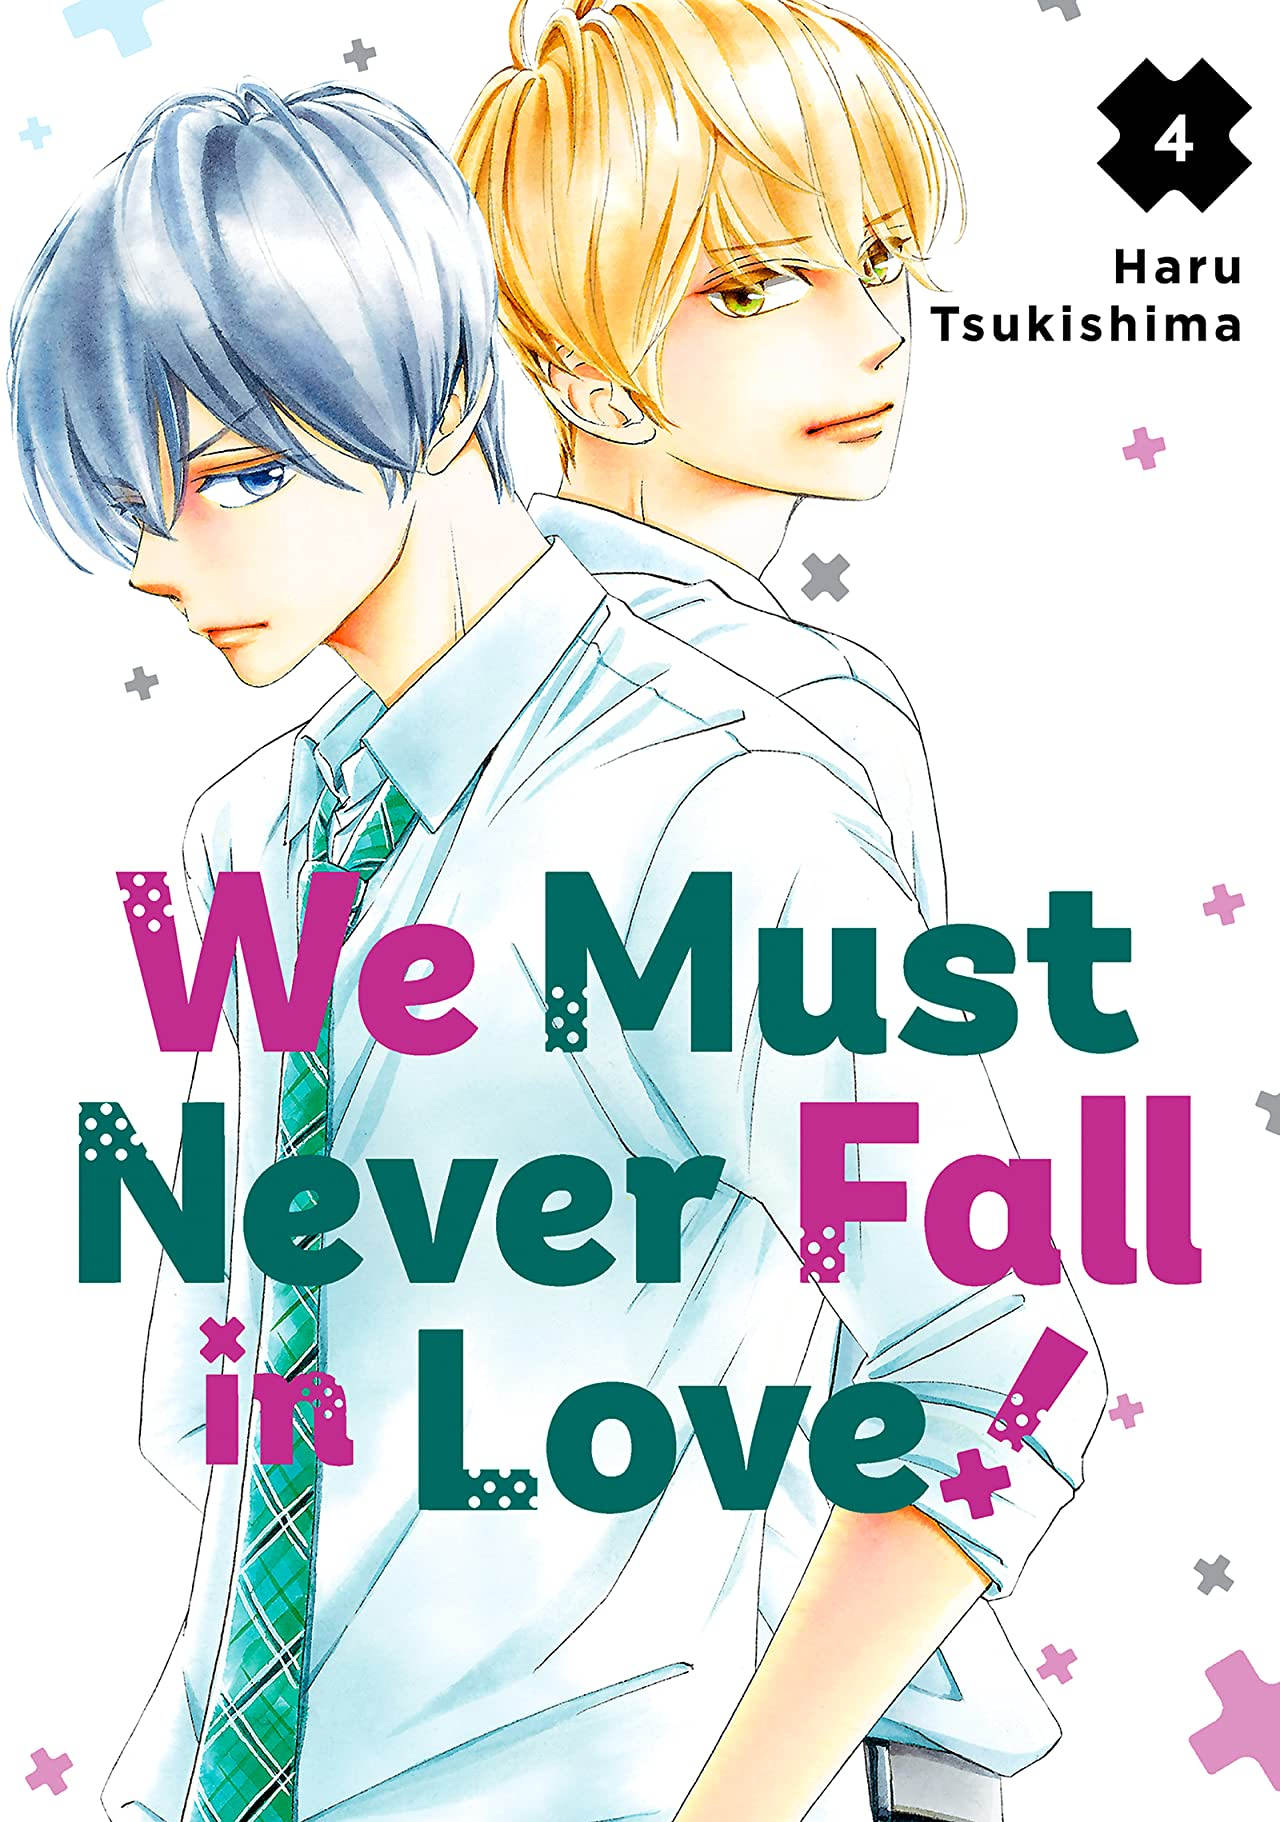 We Must Never Fall in Love! Volume 4 Review